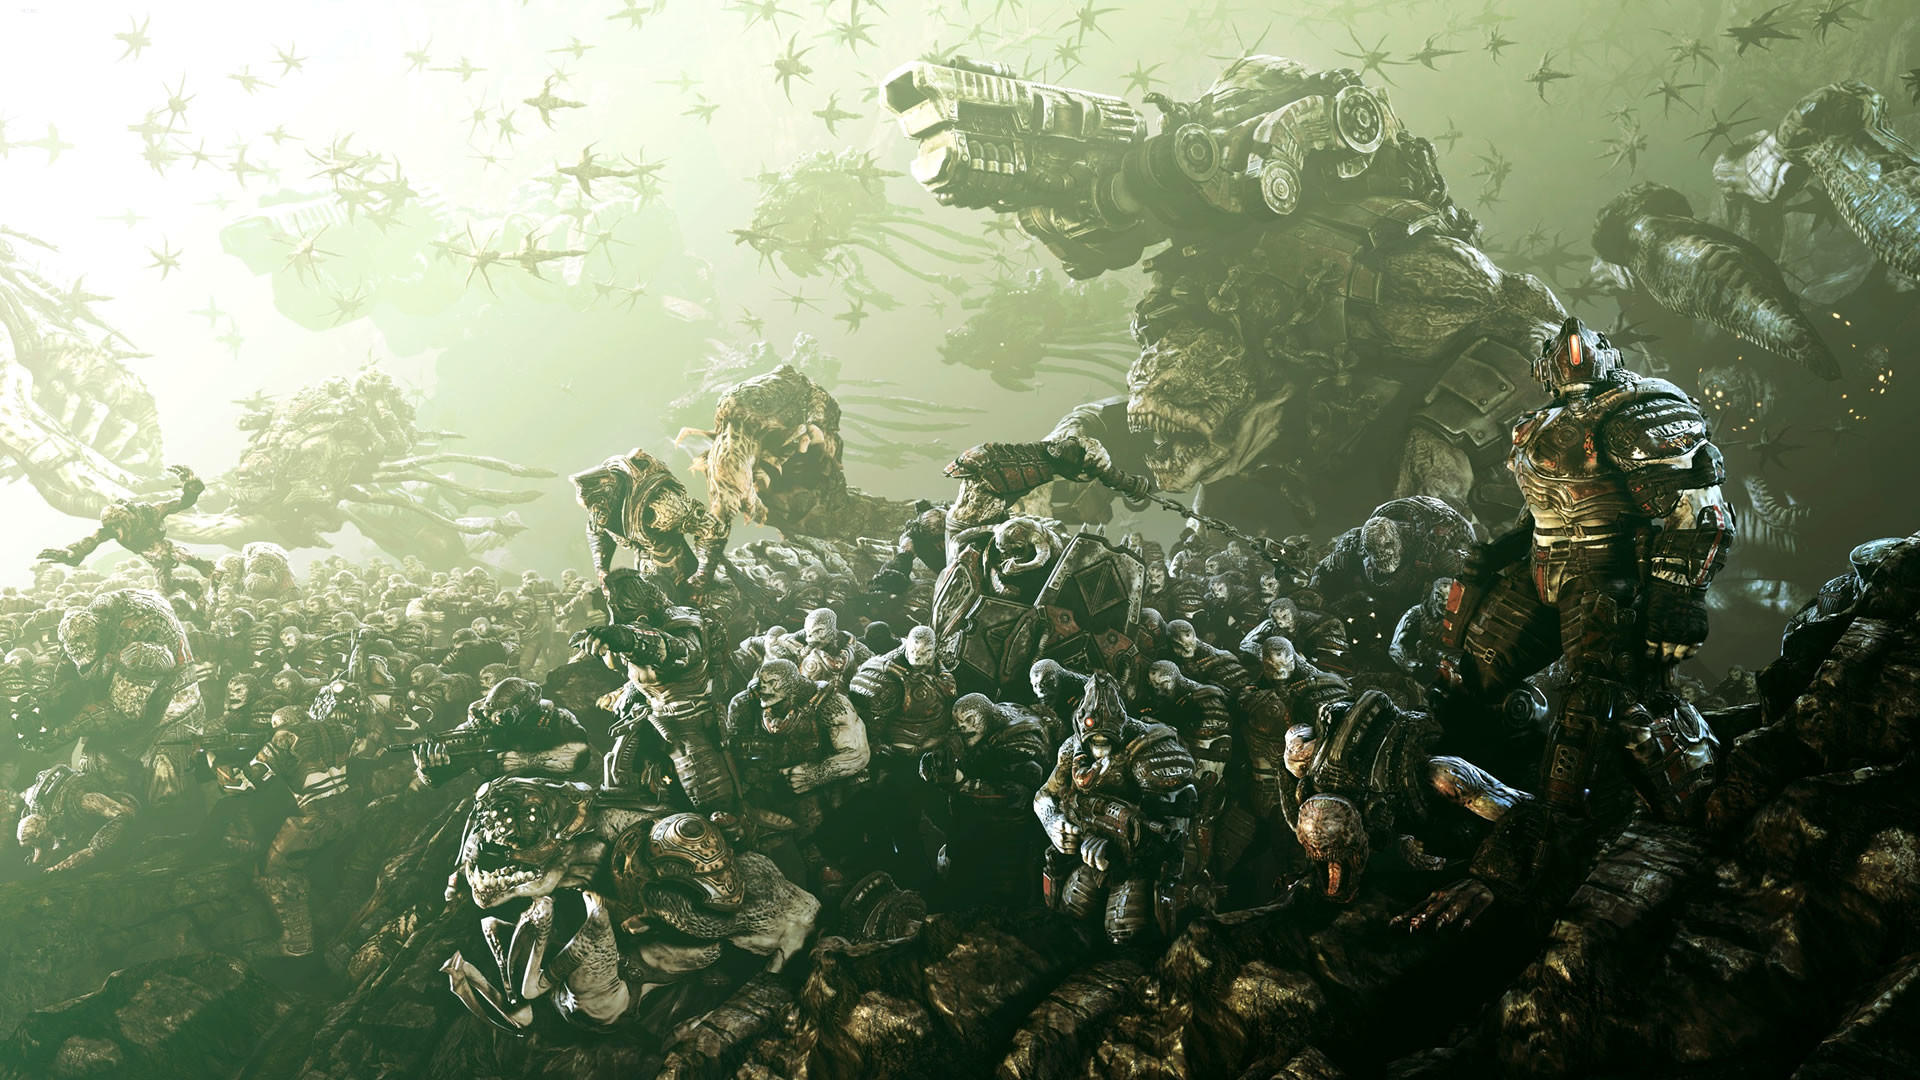 1920x1080 Wallpapers Gears of War 3 HD - Taringa!